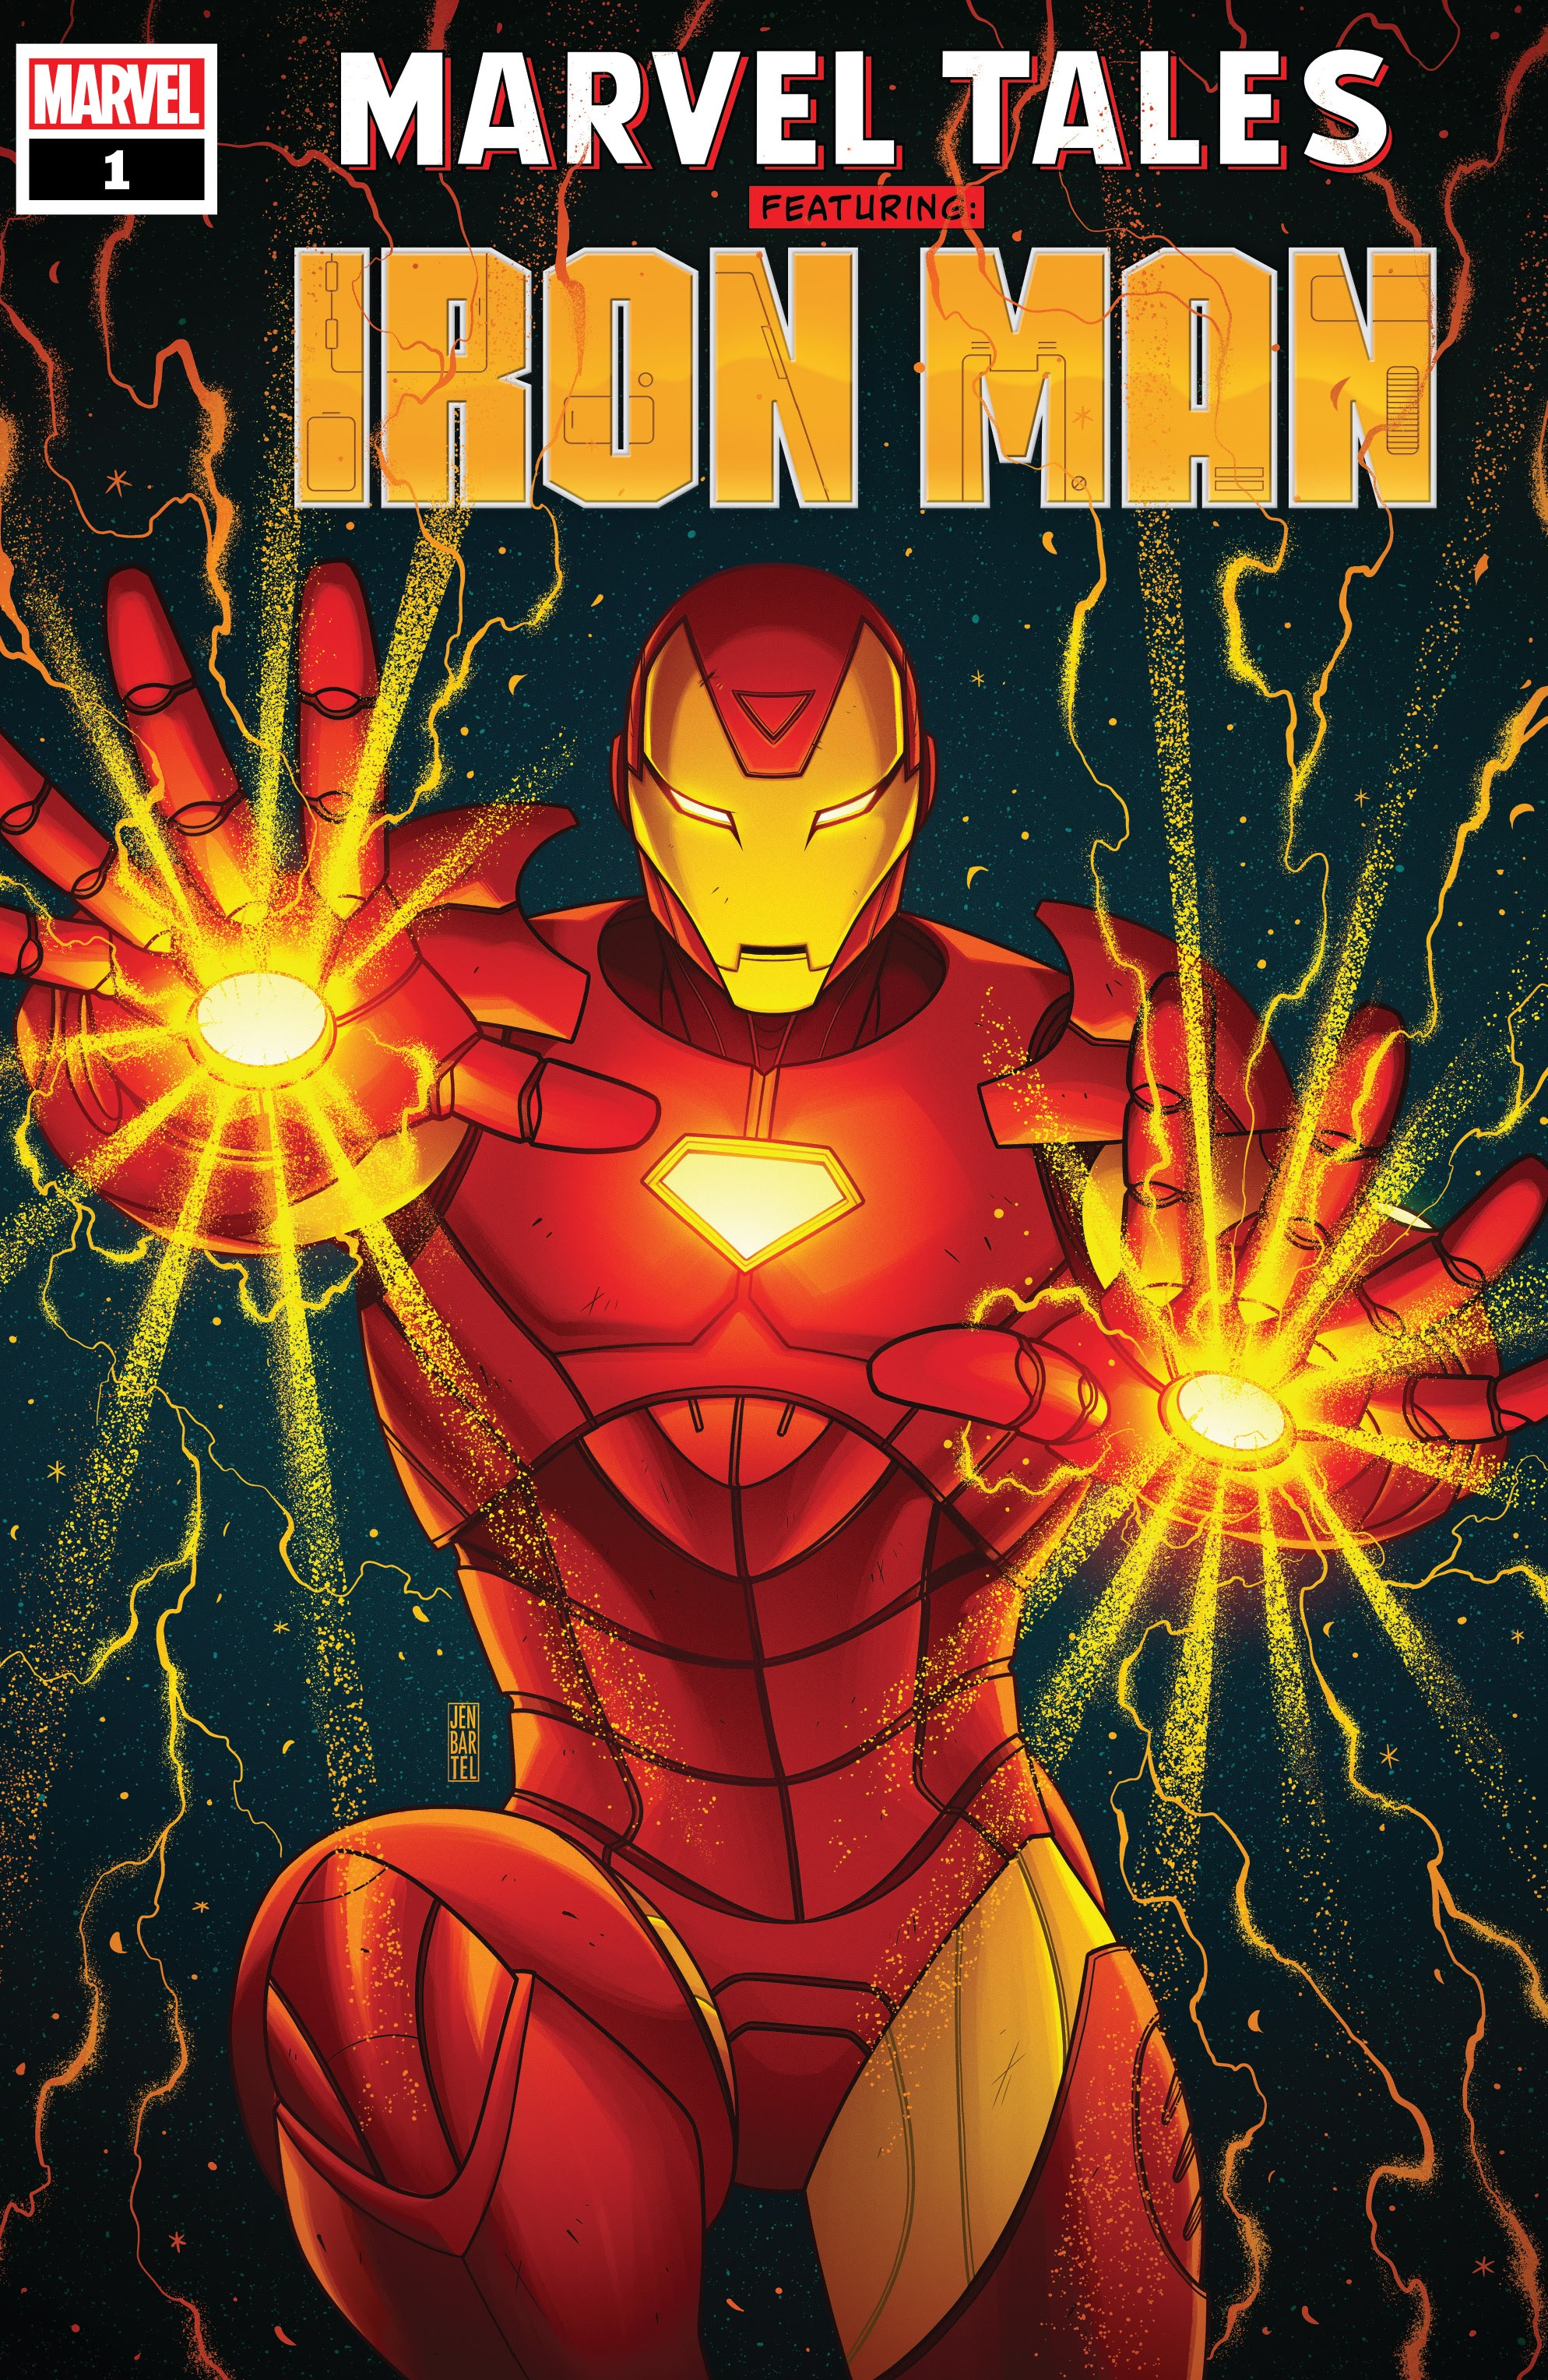 Marvel Tales: Iron Man Full Page 1